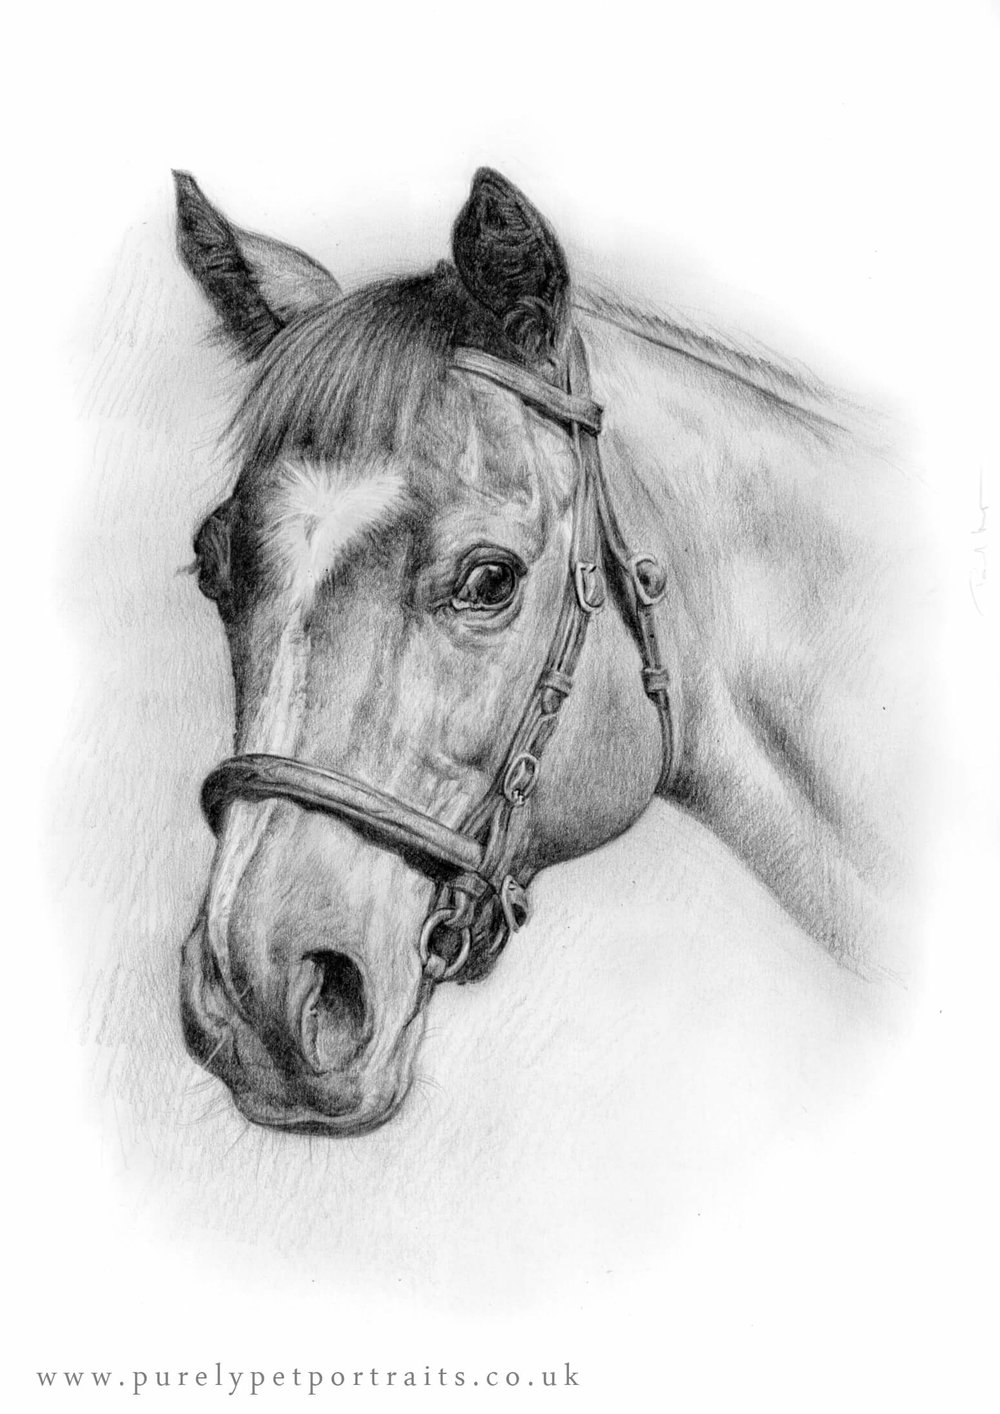 Horse portrait by Paul Moyse www.purelypetportraits.co.uk